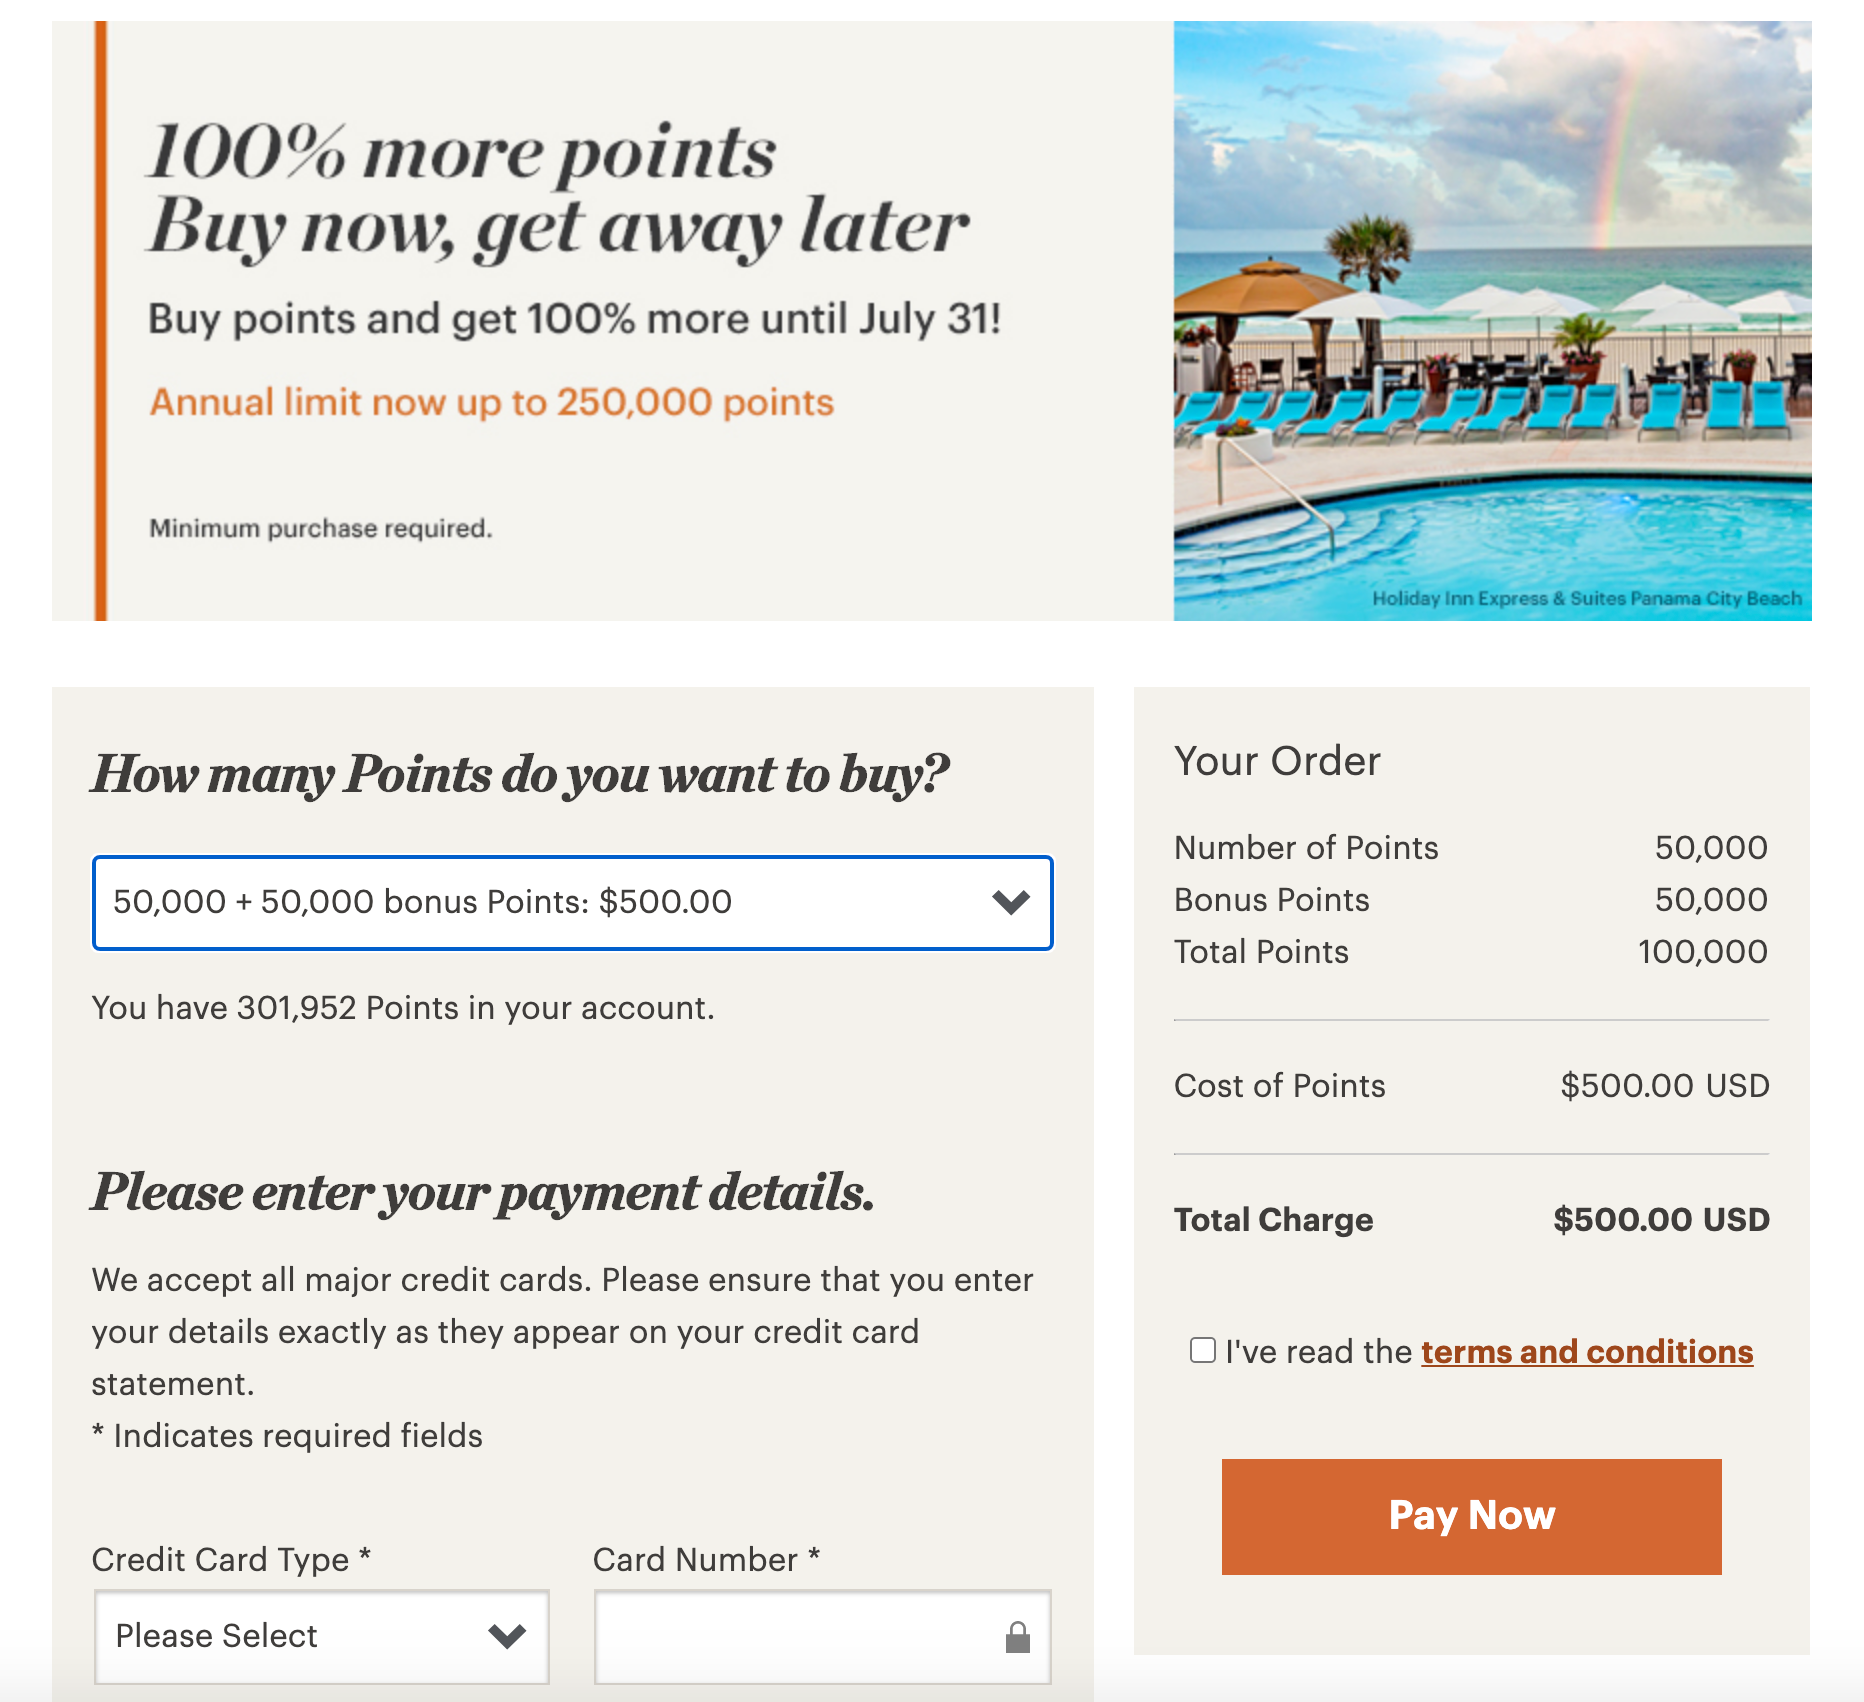 ihg points buy 0.5c 100pct - AMAZING DEAL - $500 a night water villa with pool at the Intercontinental Maldives!